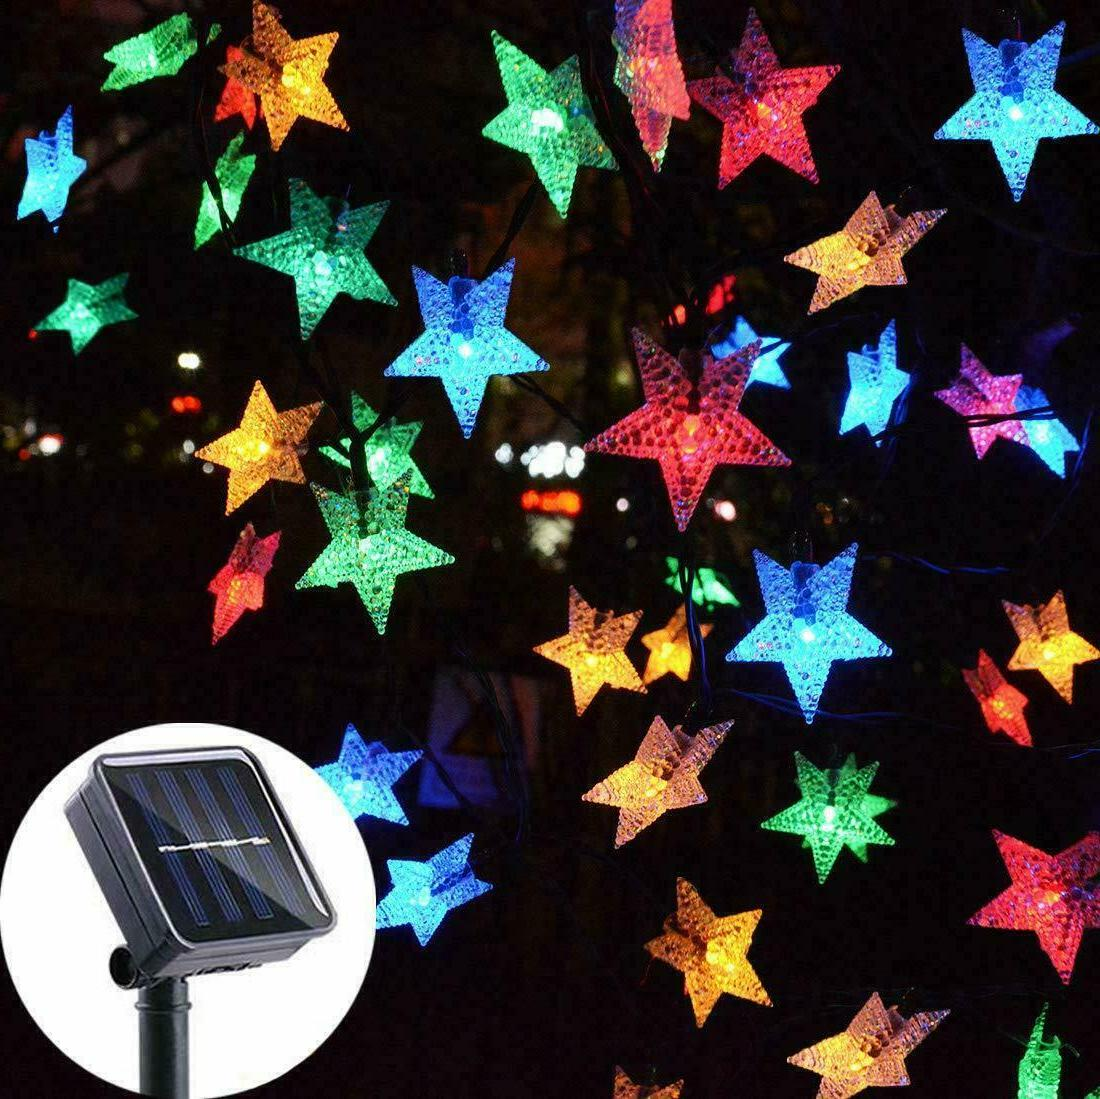 Solar Powered 100 LED String Fairy Lights Garden Party Decor